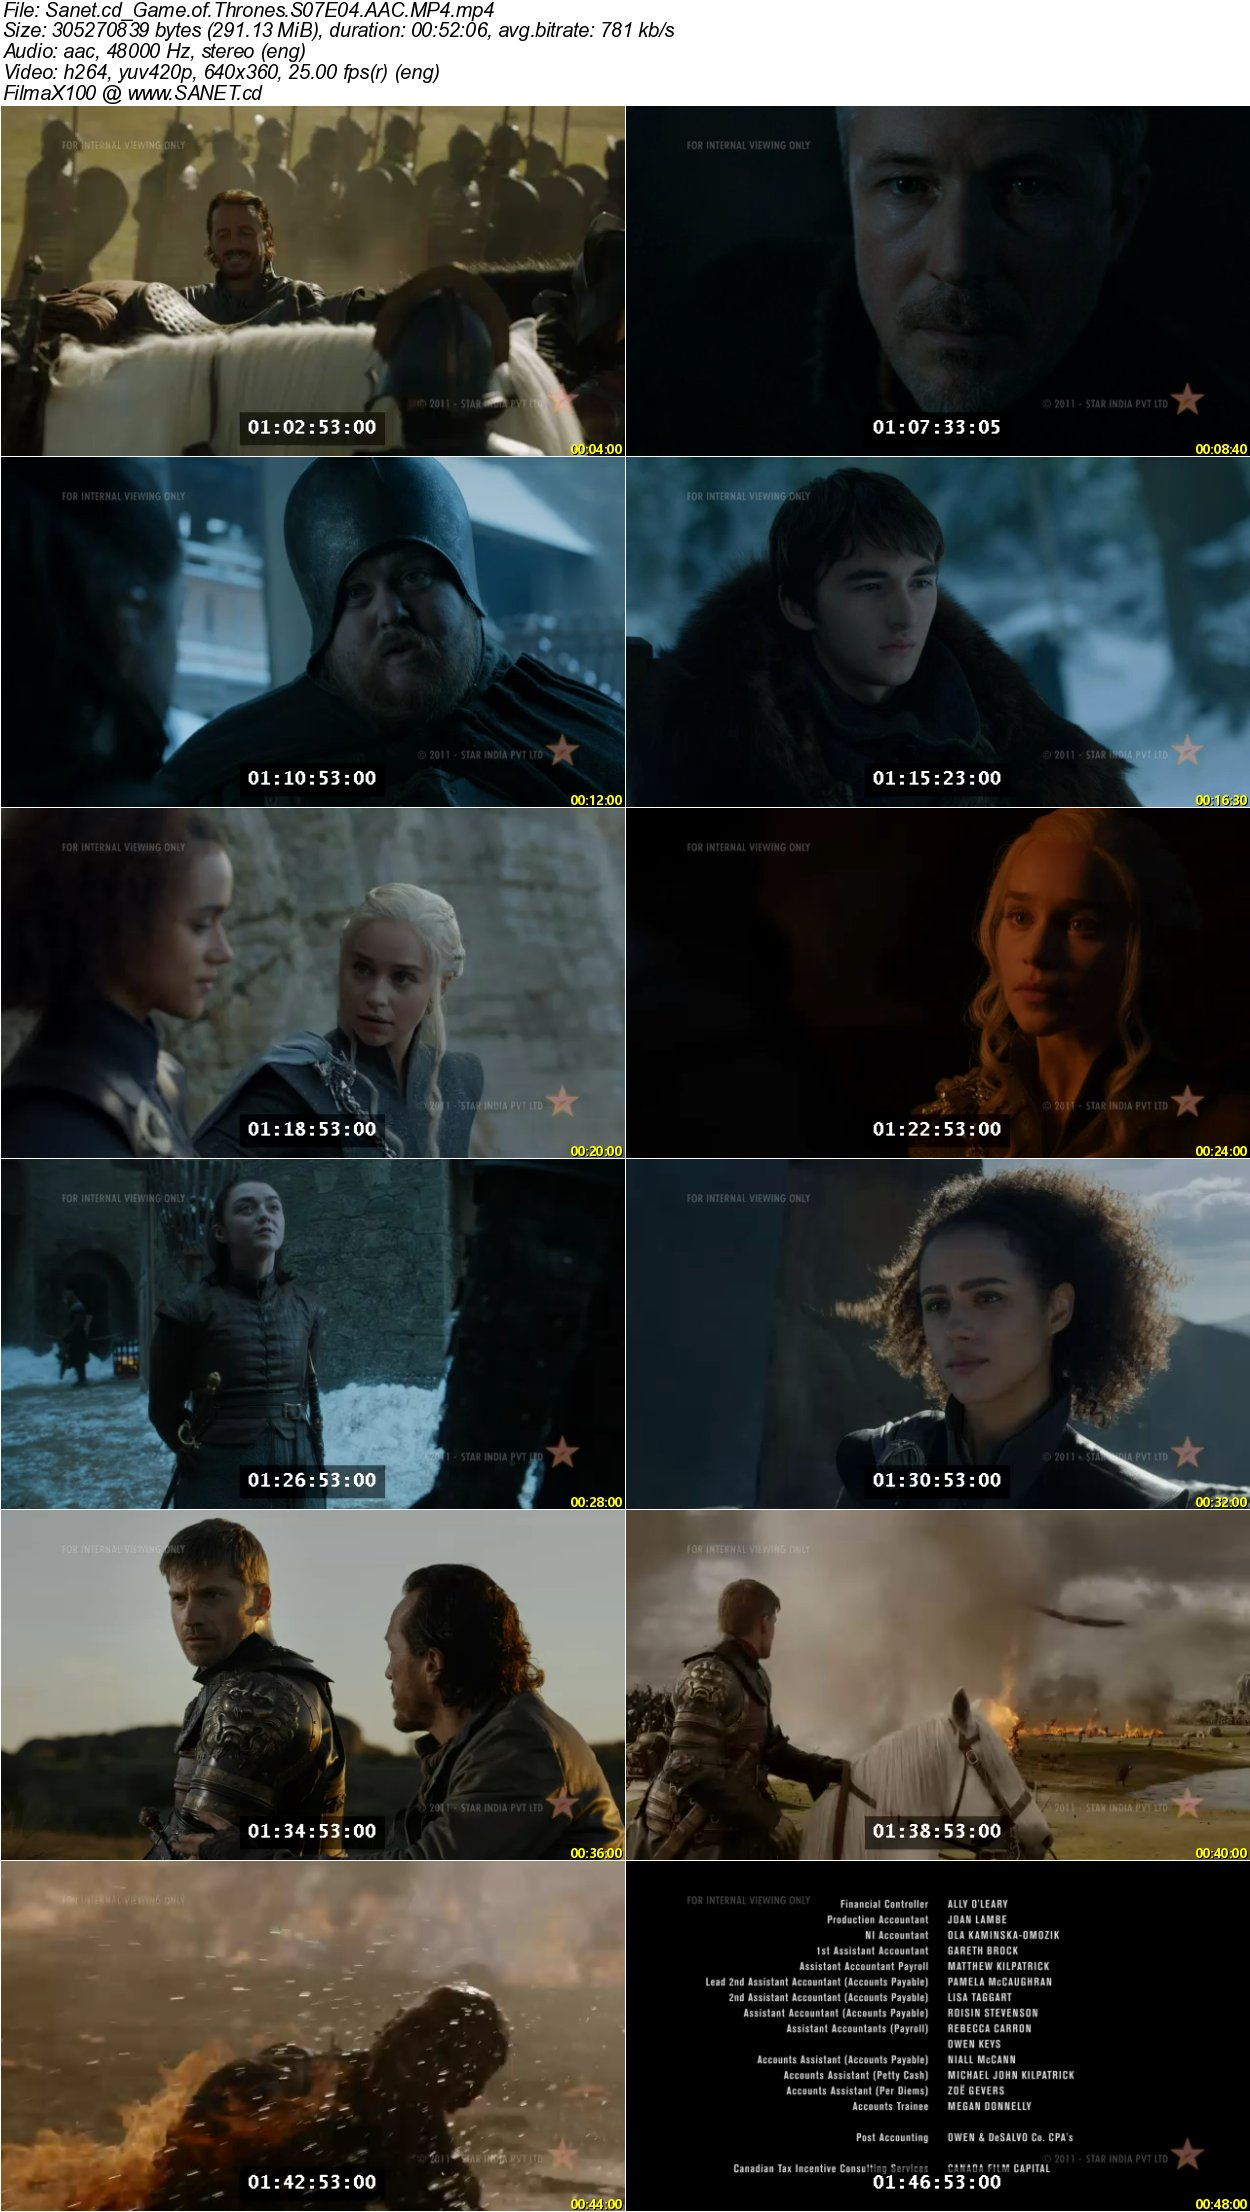 download game of thrones s07e04